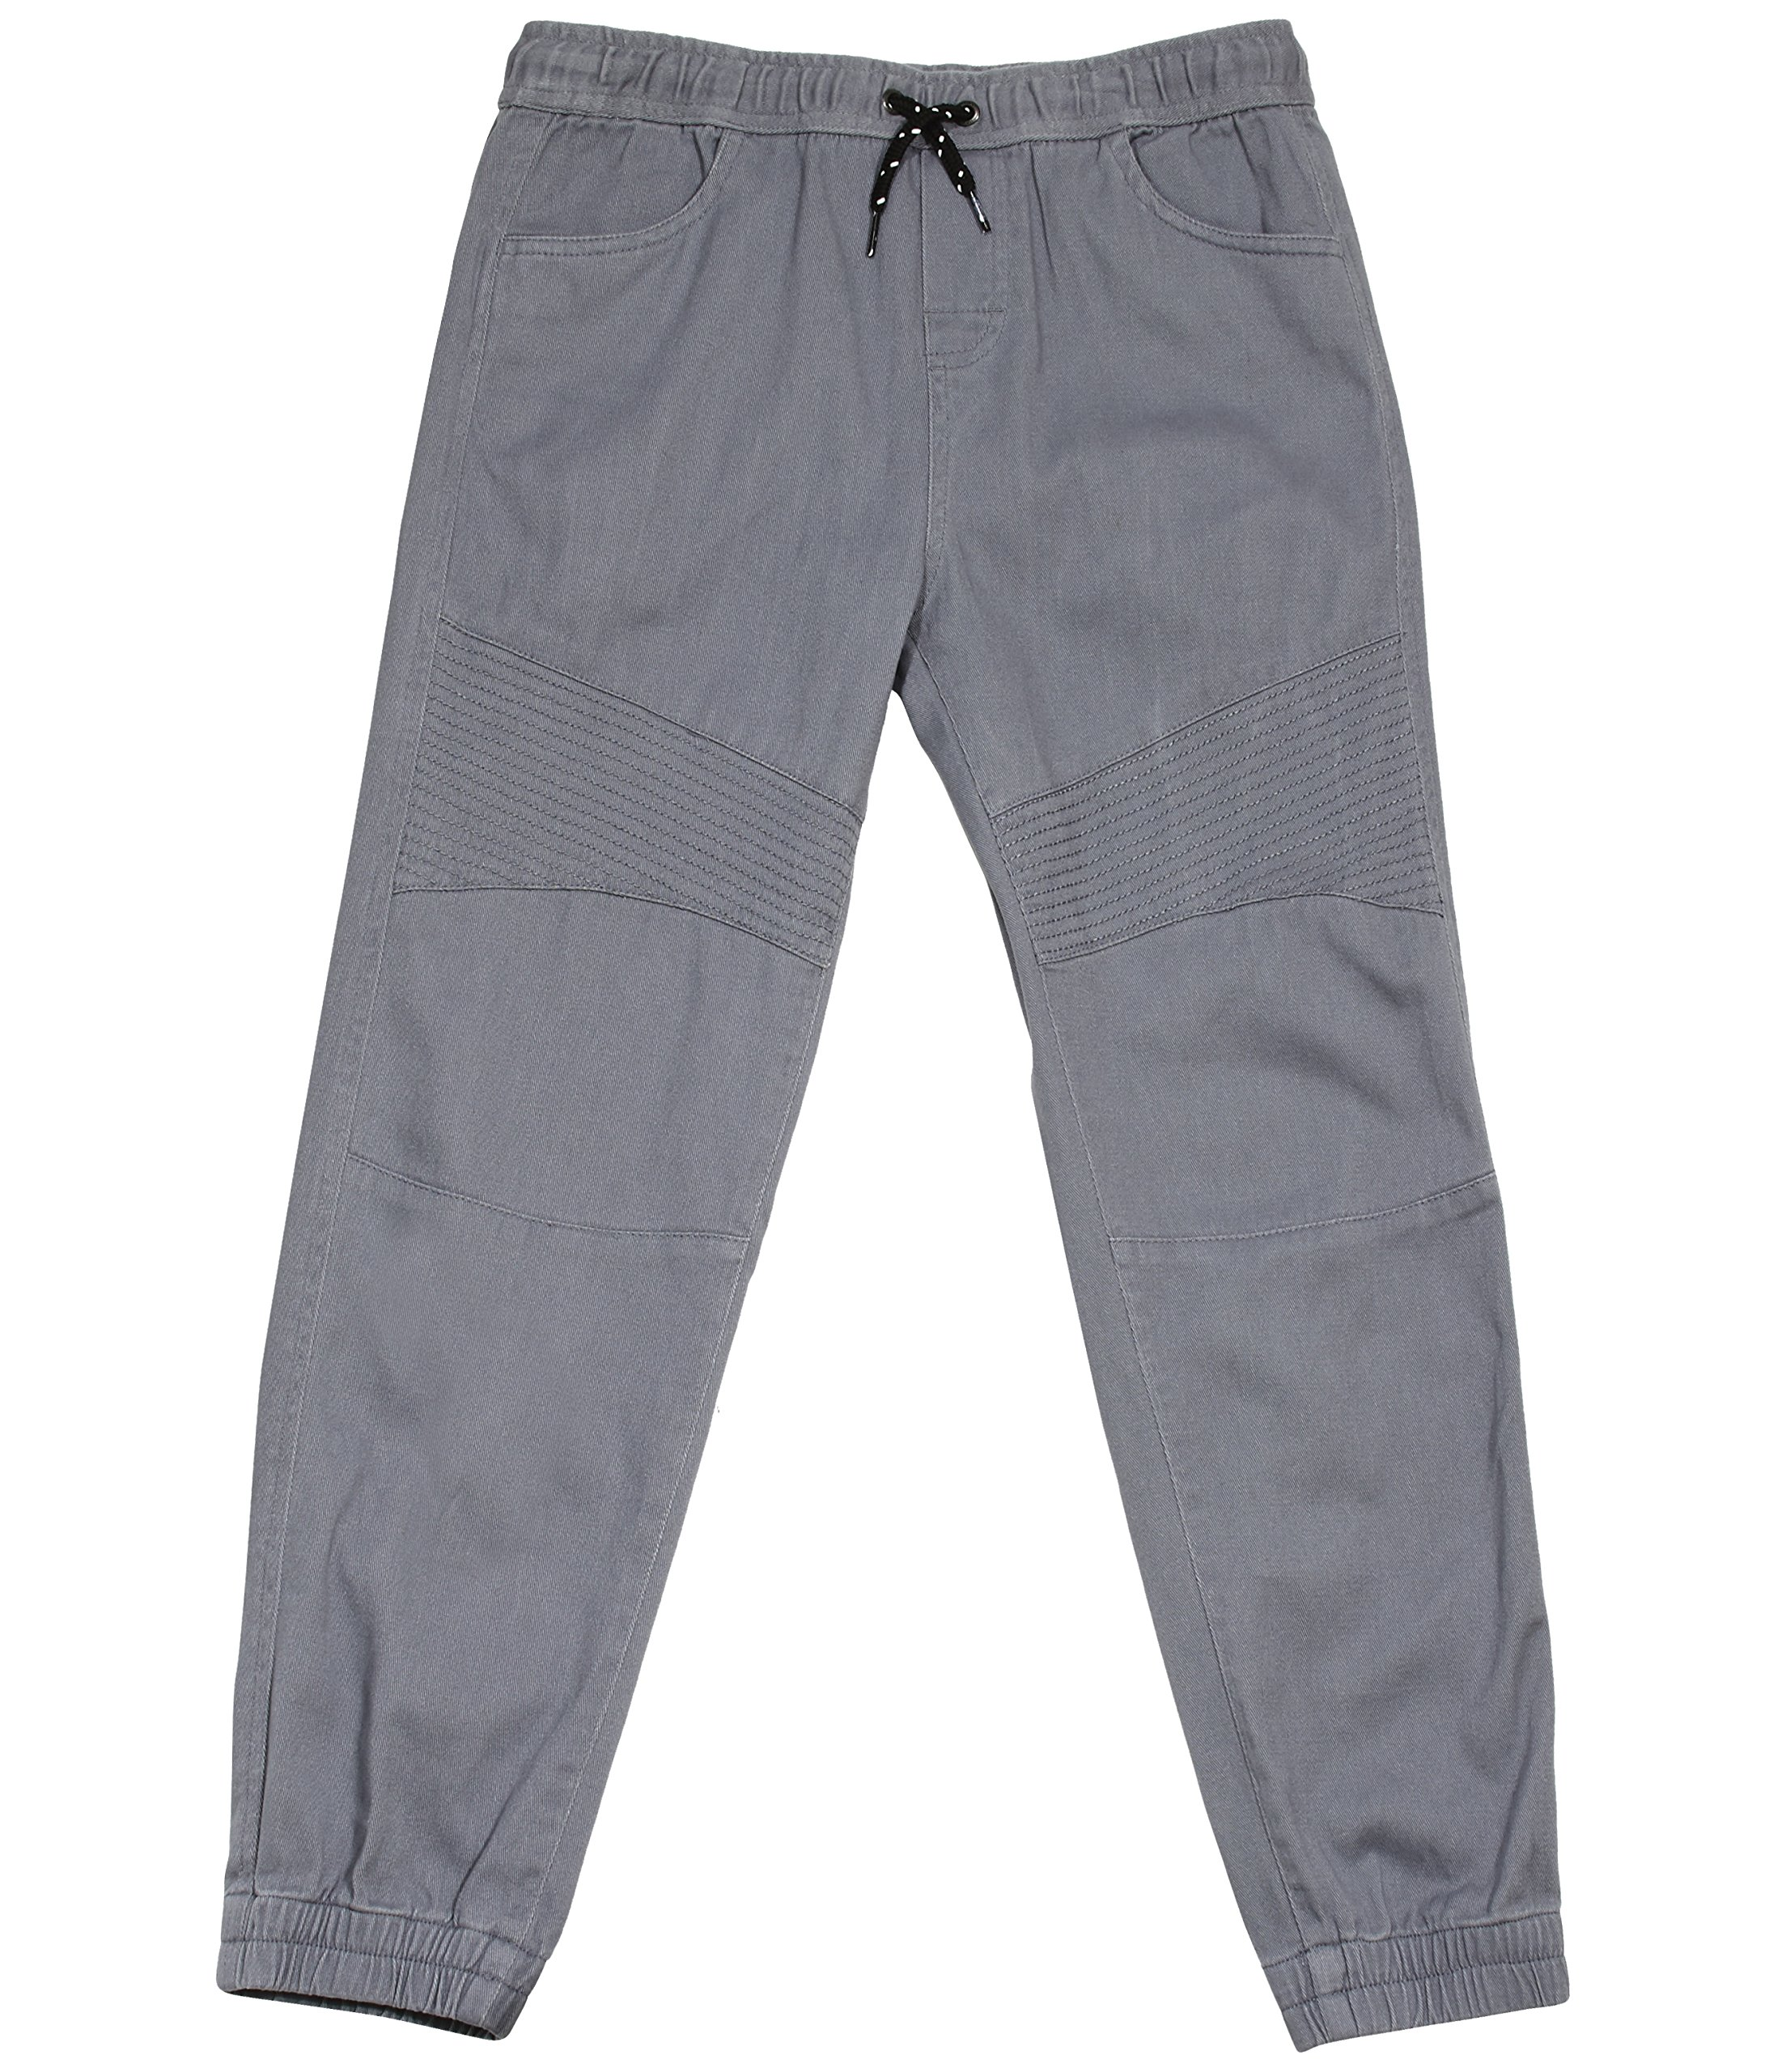 Tony Hawk Kids Boys Cotton Stretch Twill Jogger Pants with Drawstring and Pockets School Clothes Pants